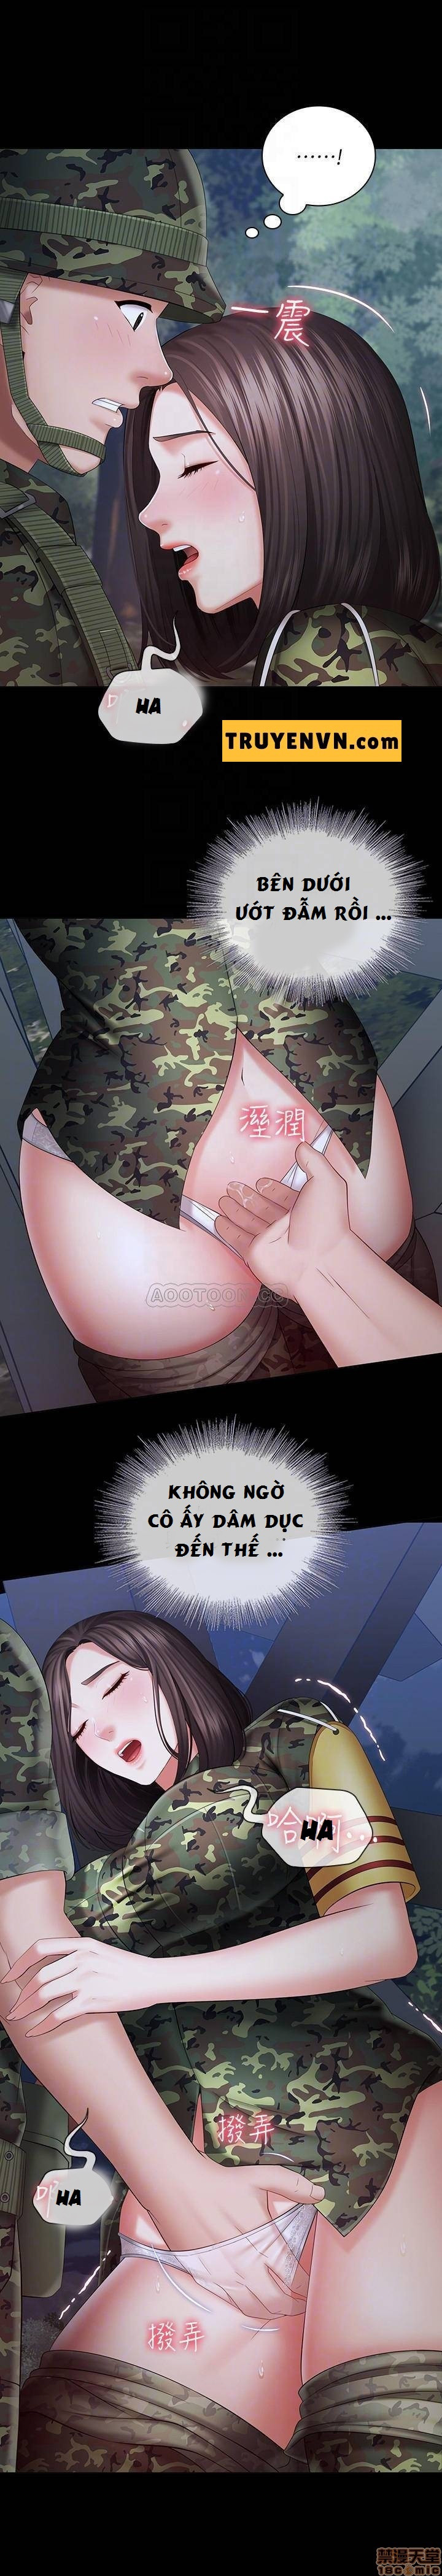 Image 010 in My Sister's Duty -Chapter 24